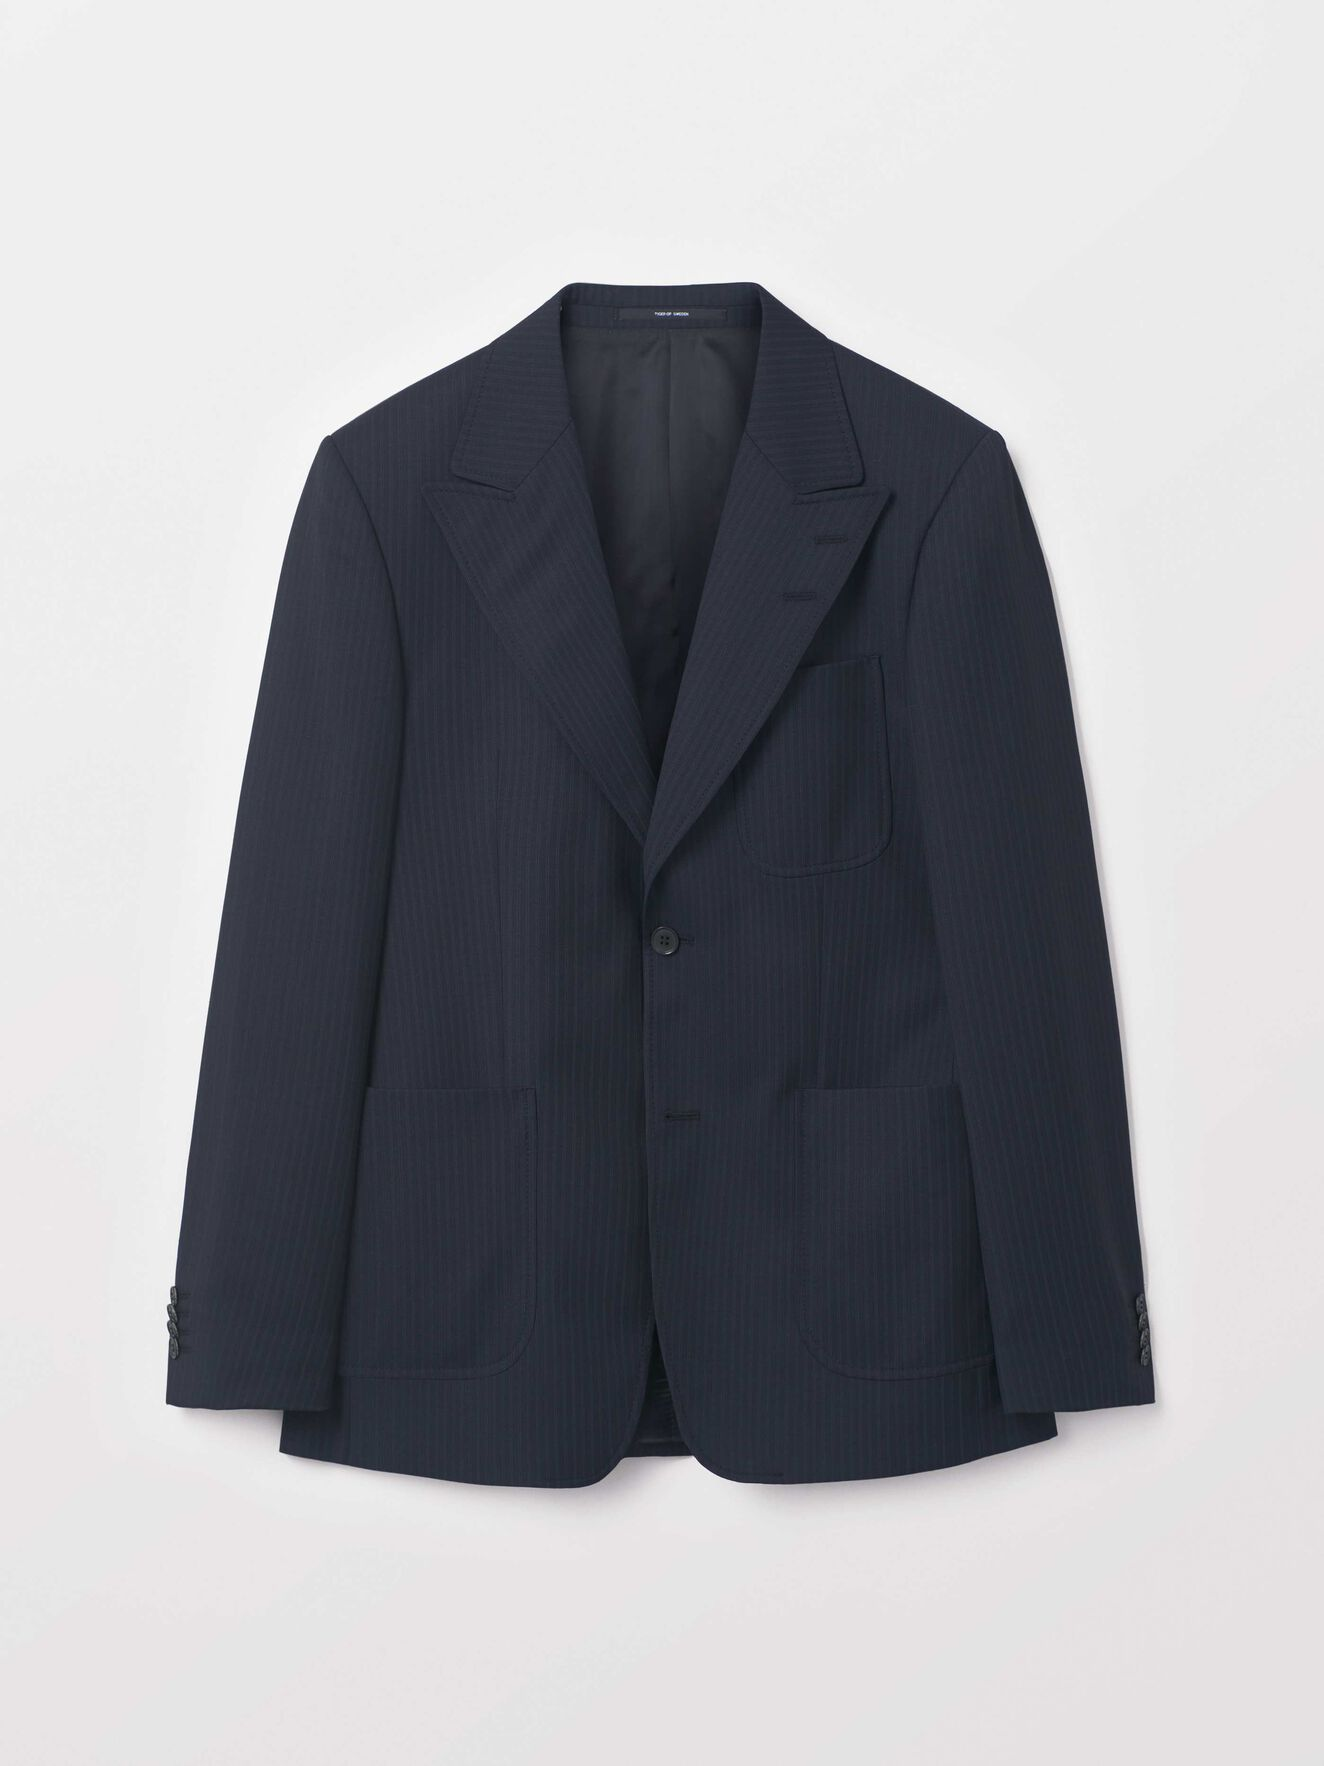 Javio Blazer in Light Ink from Tiger of Sweden